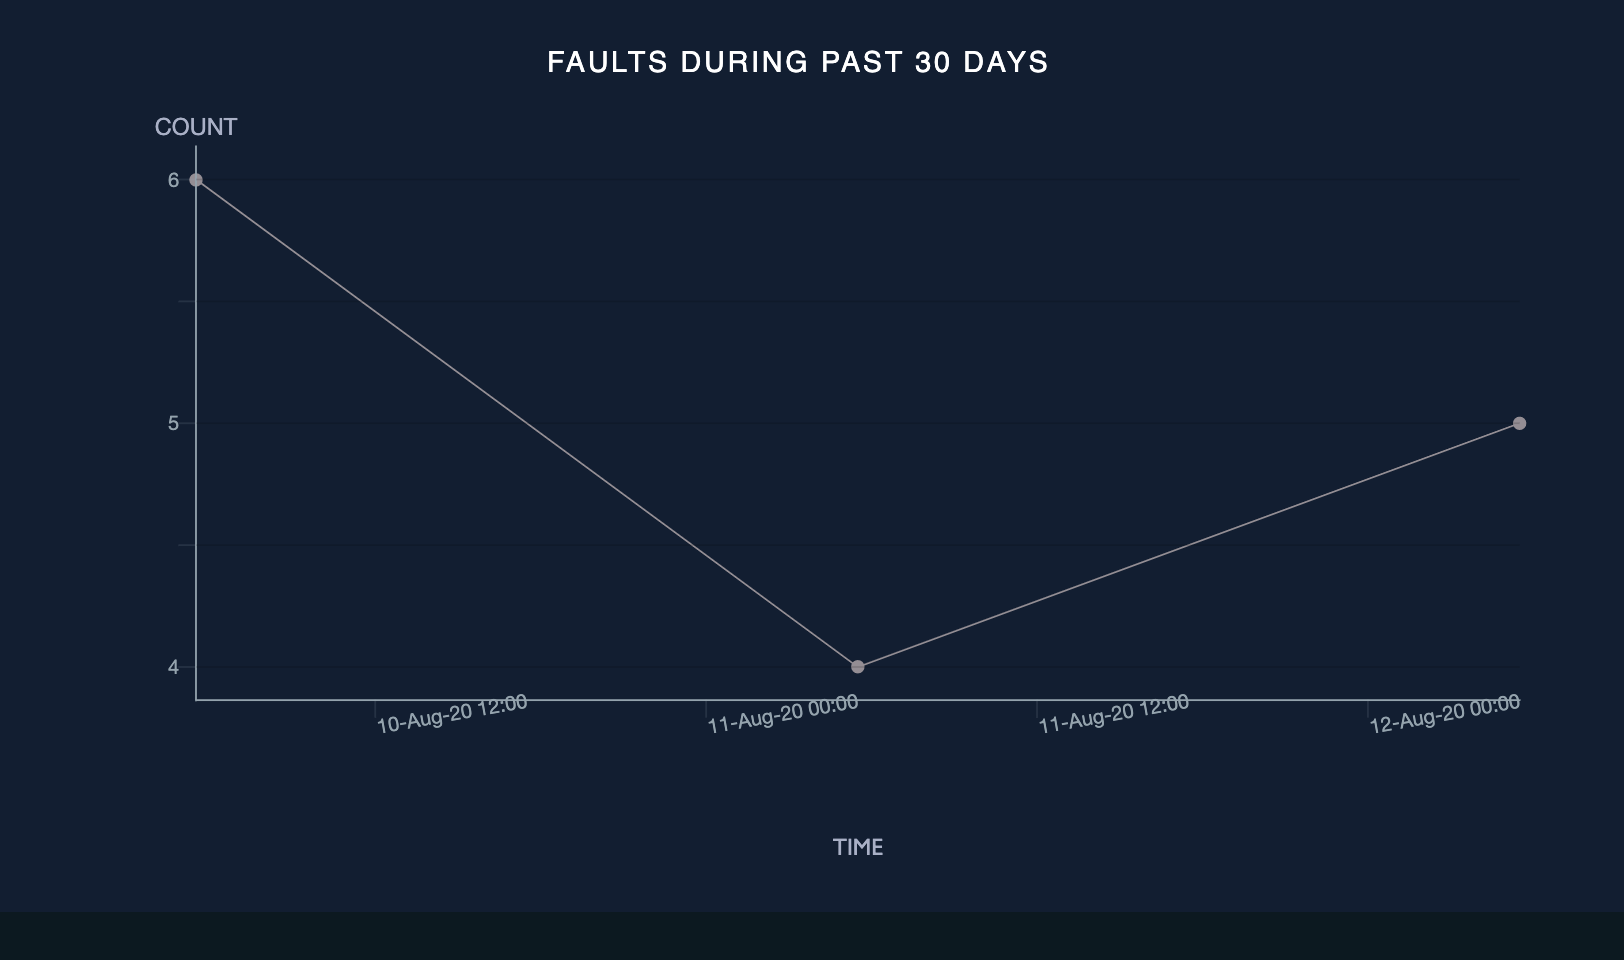 Faults during past 30 days